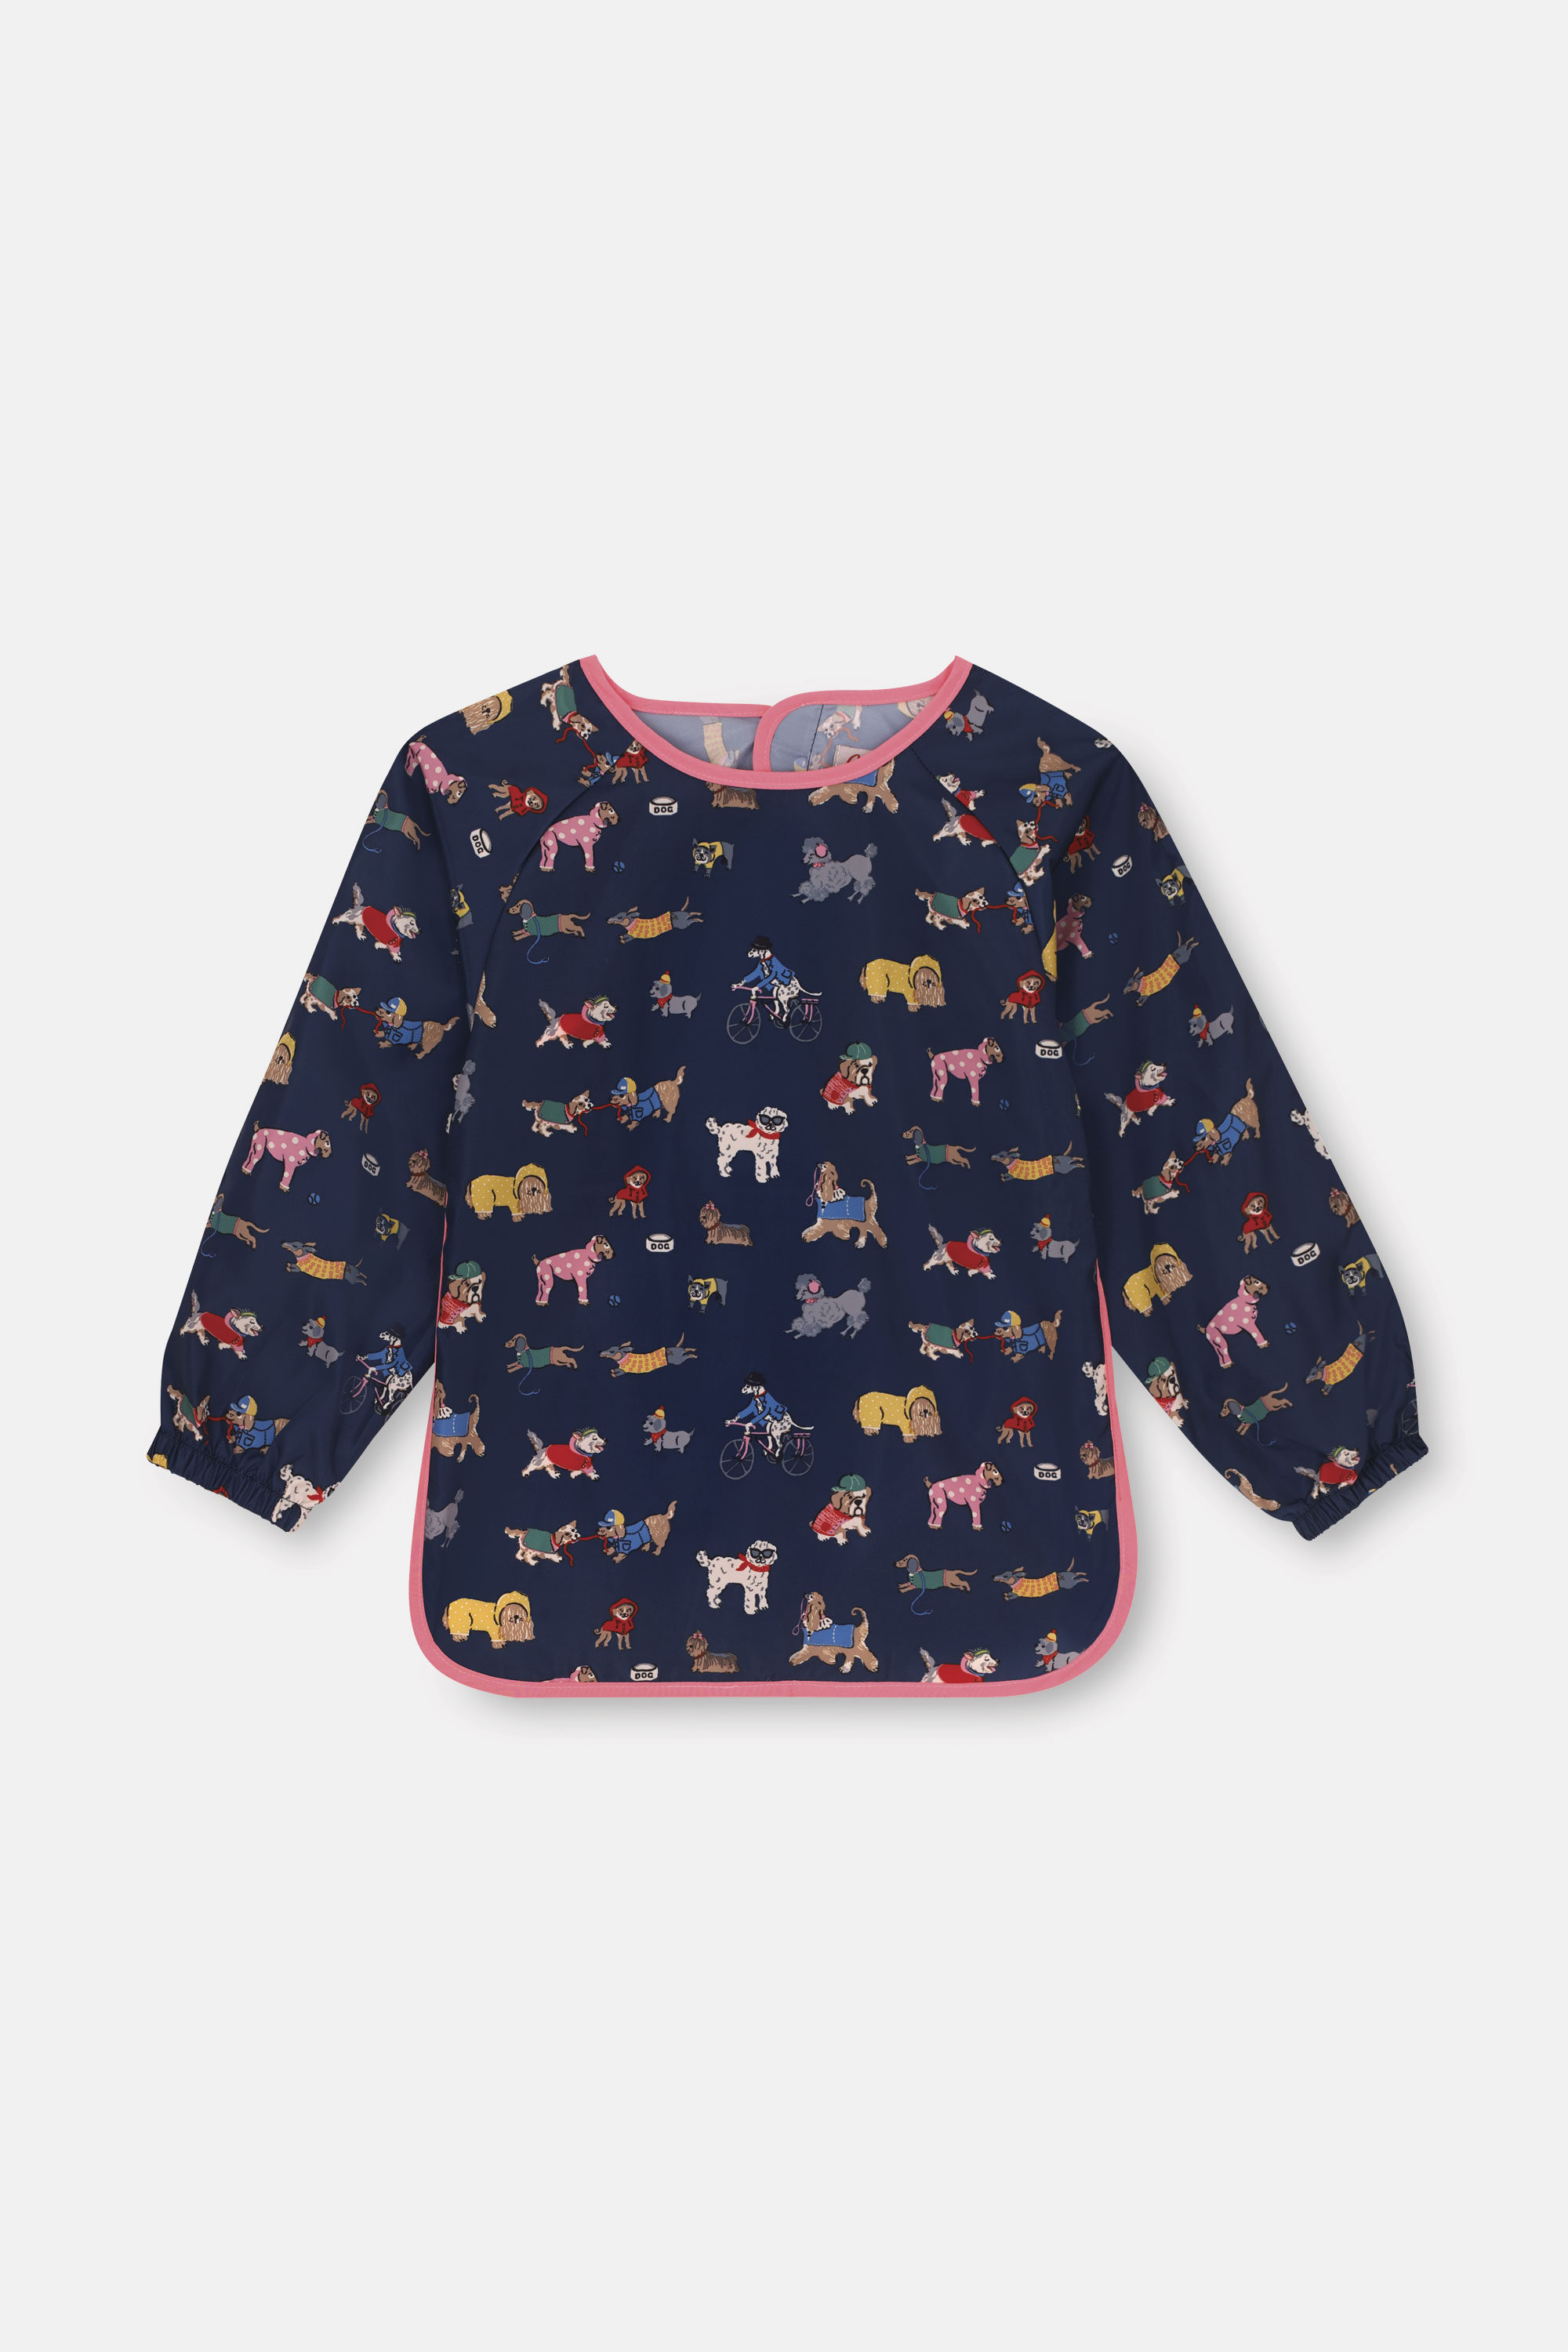 Cath Kidston Park Dogs Kids Long Sleeve Apron in Navy, 4-6 yr